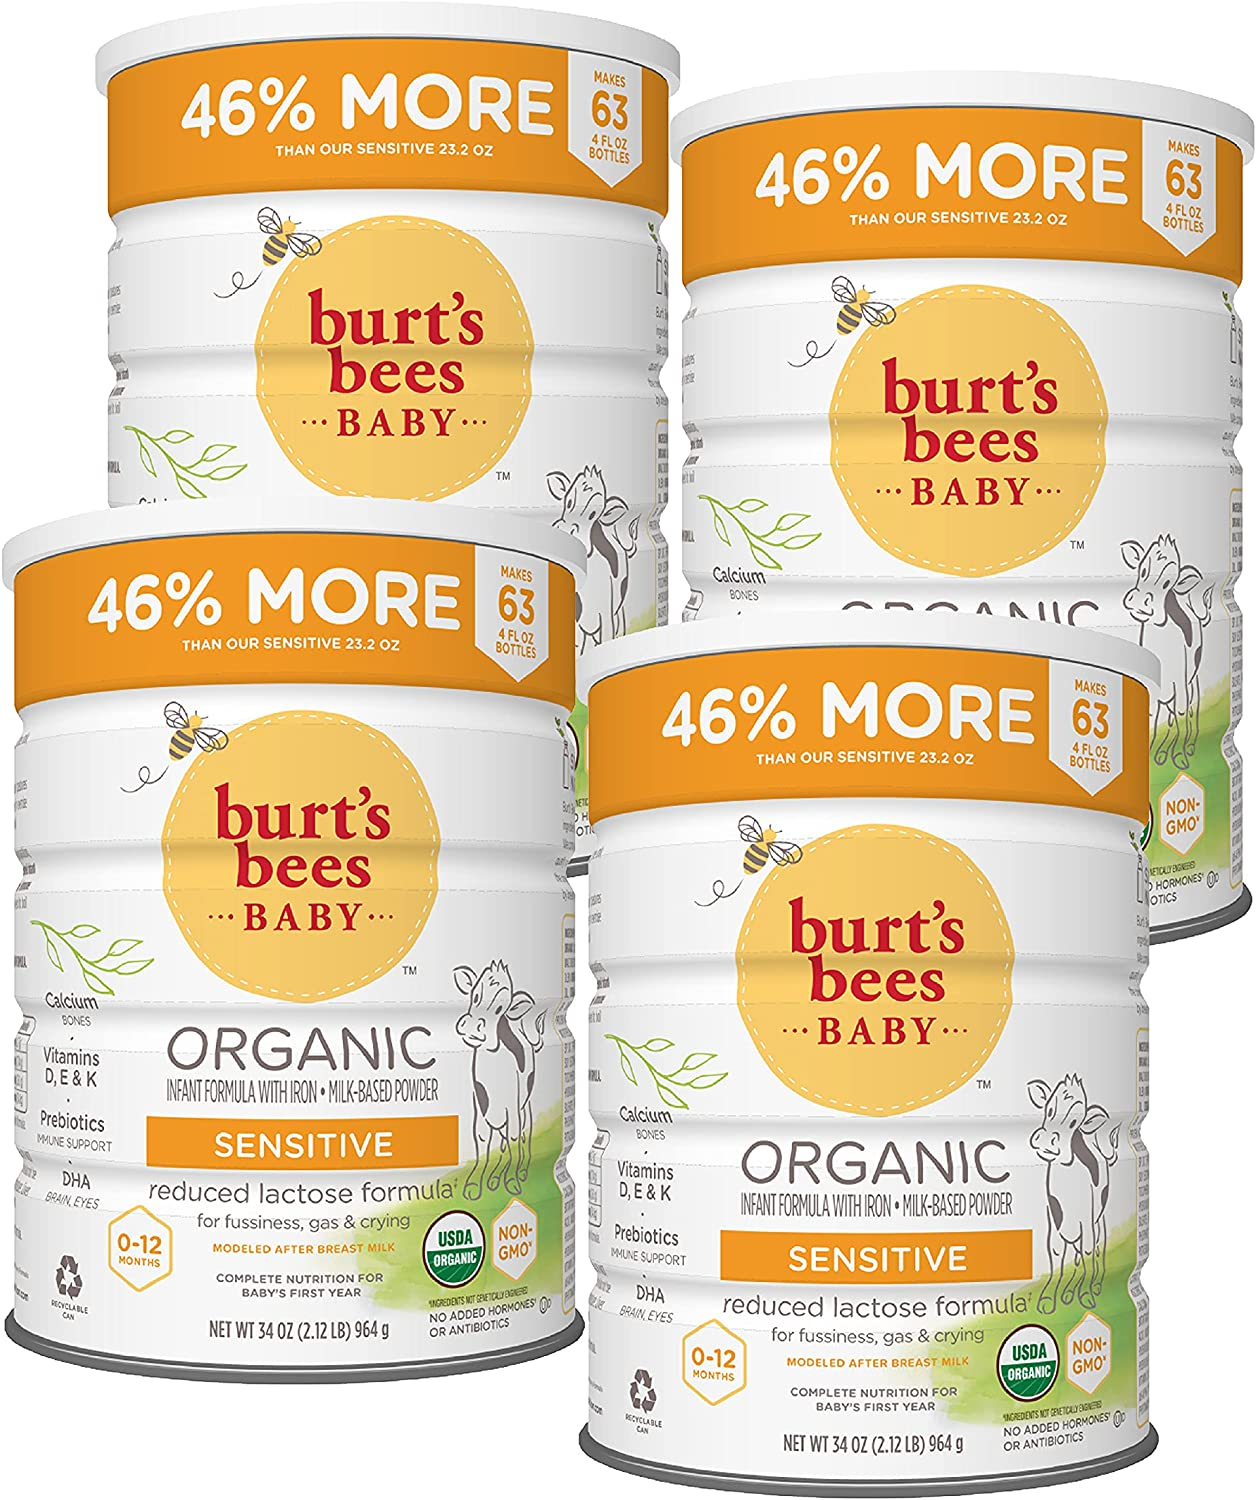 Burt's Bees Baby Organic Sensitive Special price Infant Formula cheap C 4 with Iron